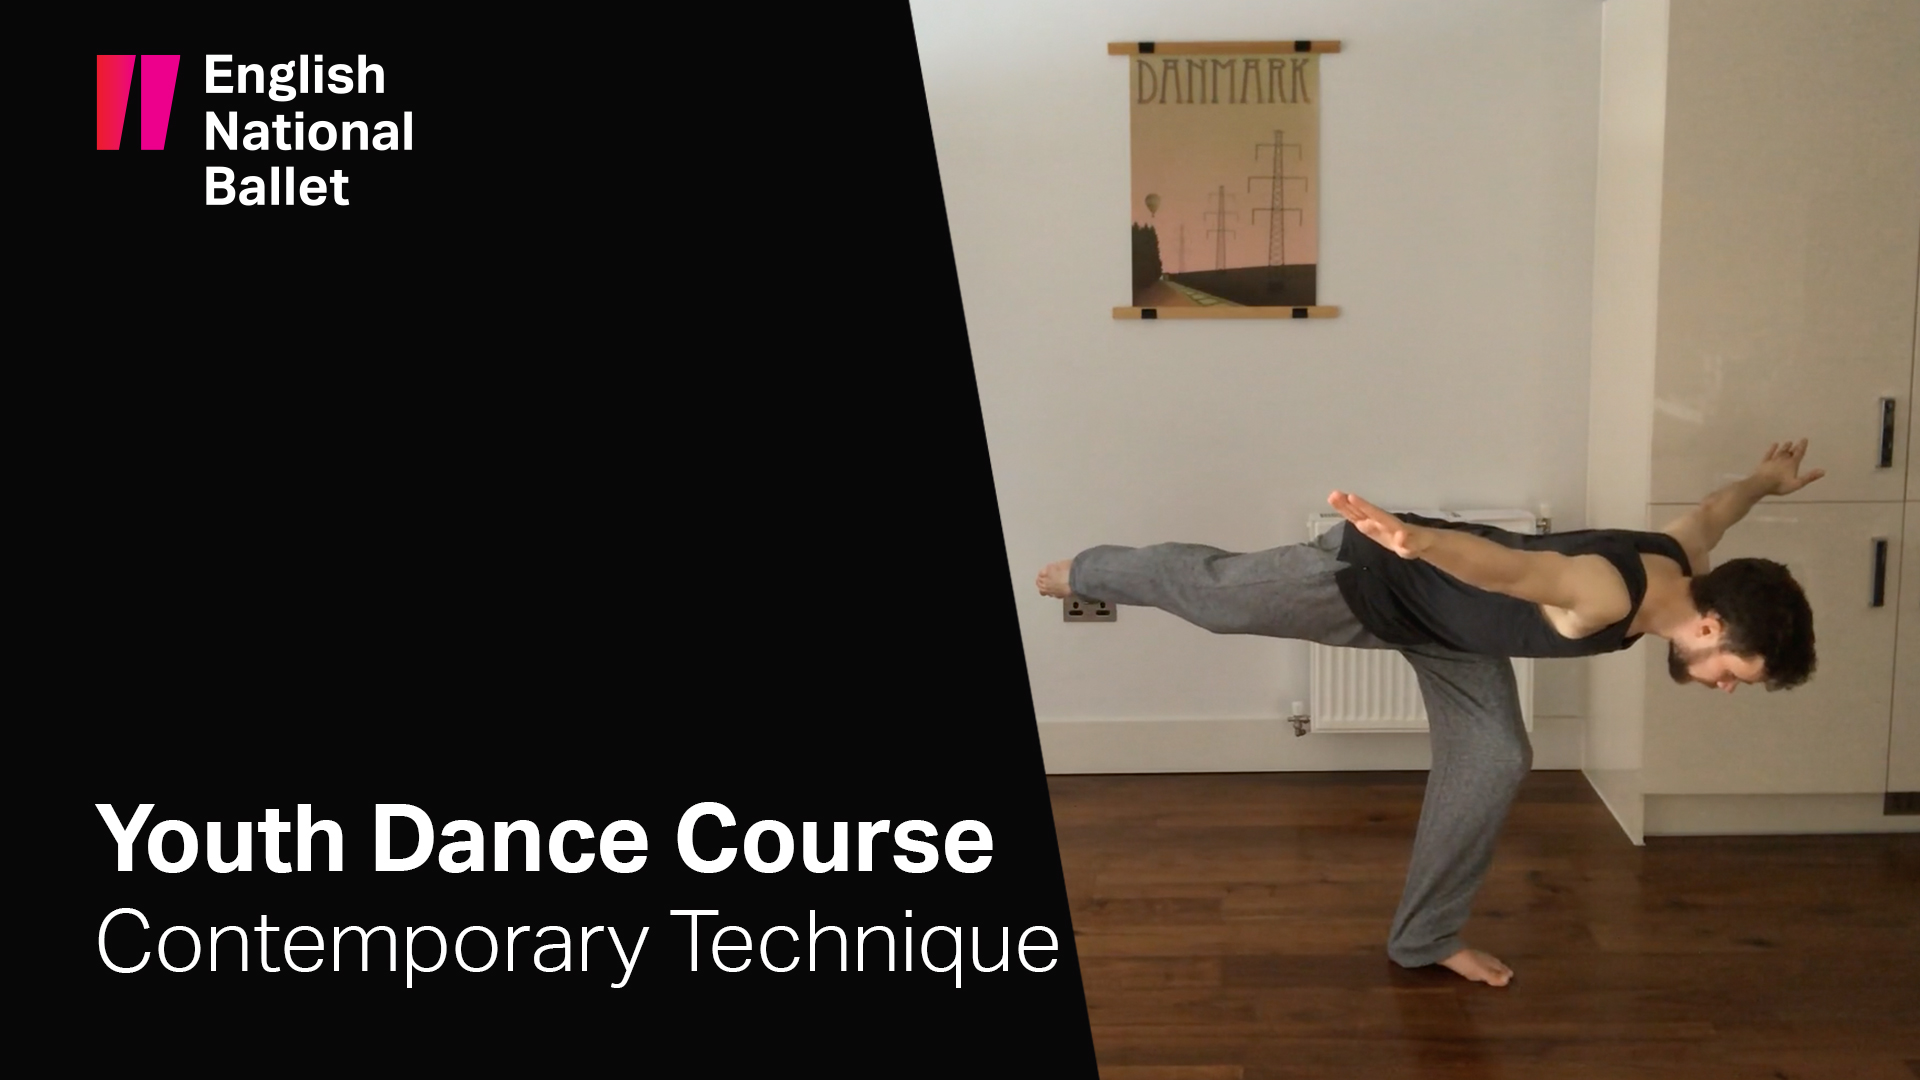 Youth Dance Course: Contemporary Technique with James Müller | English National Ballet